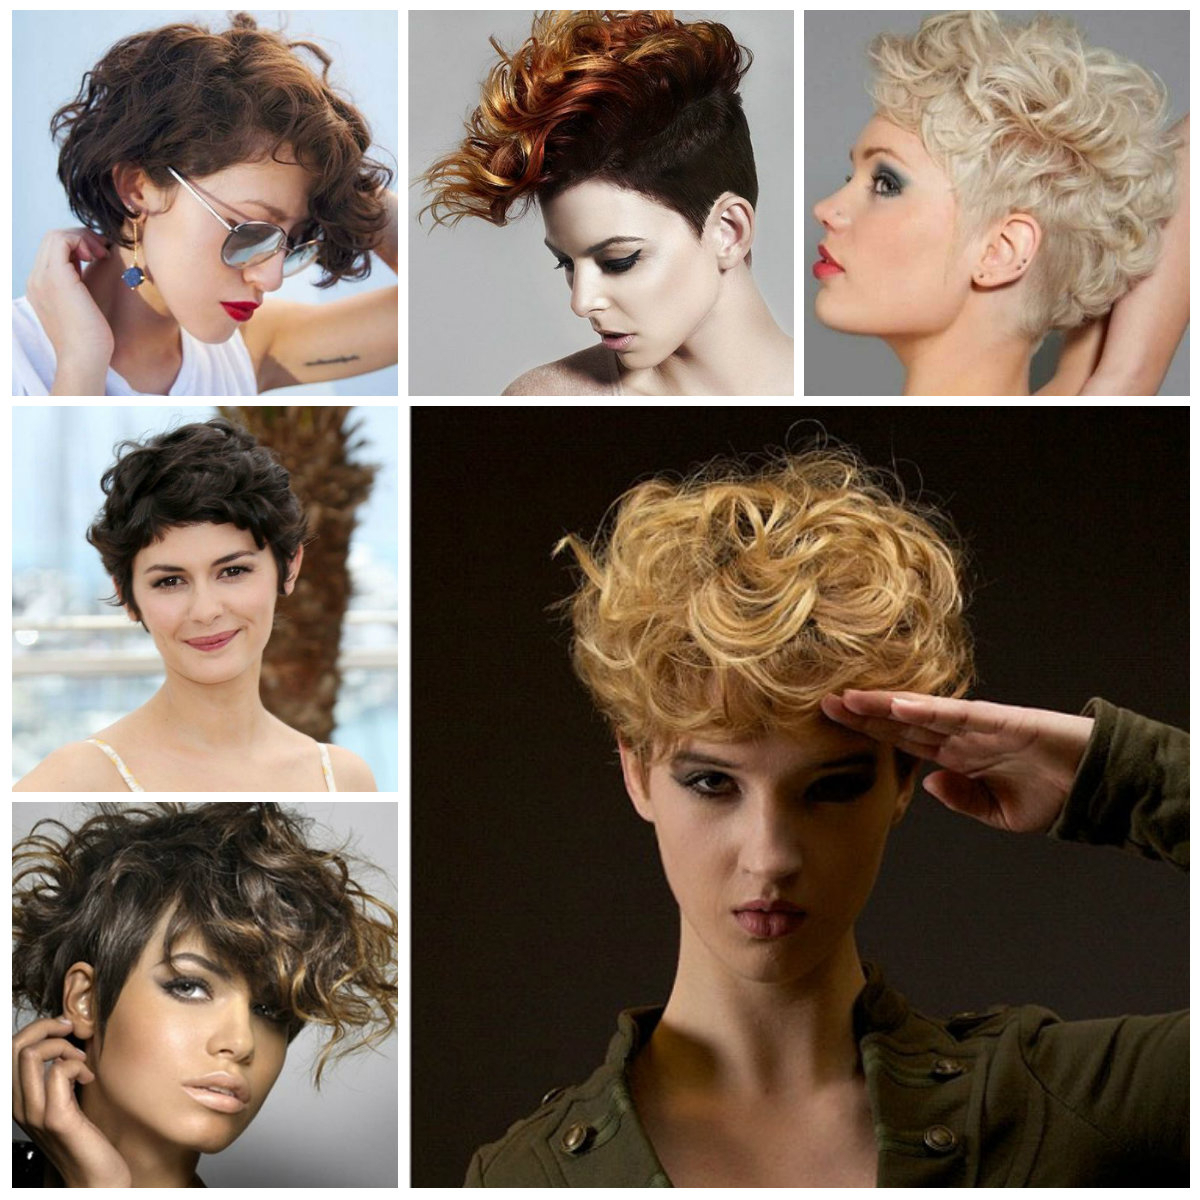 2019 Curly Pixie Haircuts | Hairstyles For Women 2019, Haircuts For Inside Wavy Messy Pixie Hairstyles With Bangs (View 12 of 25)